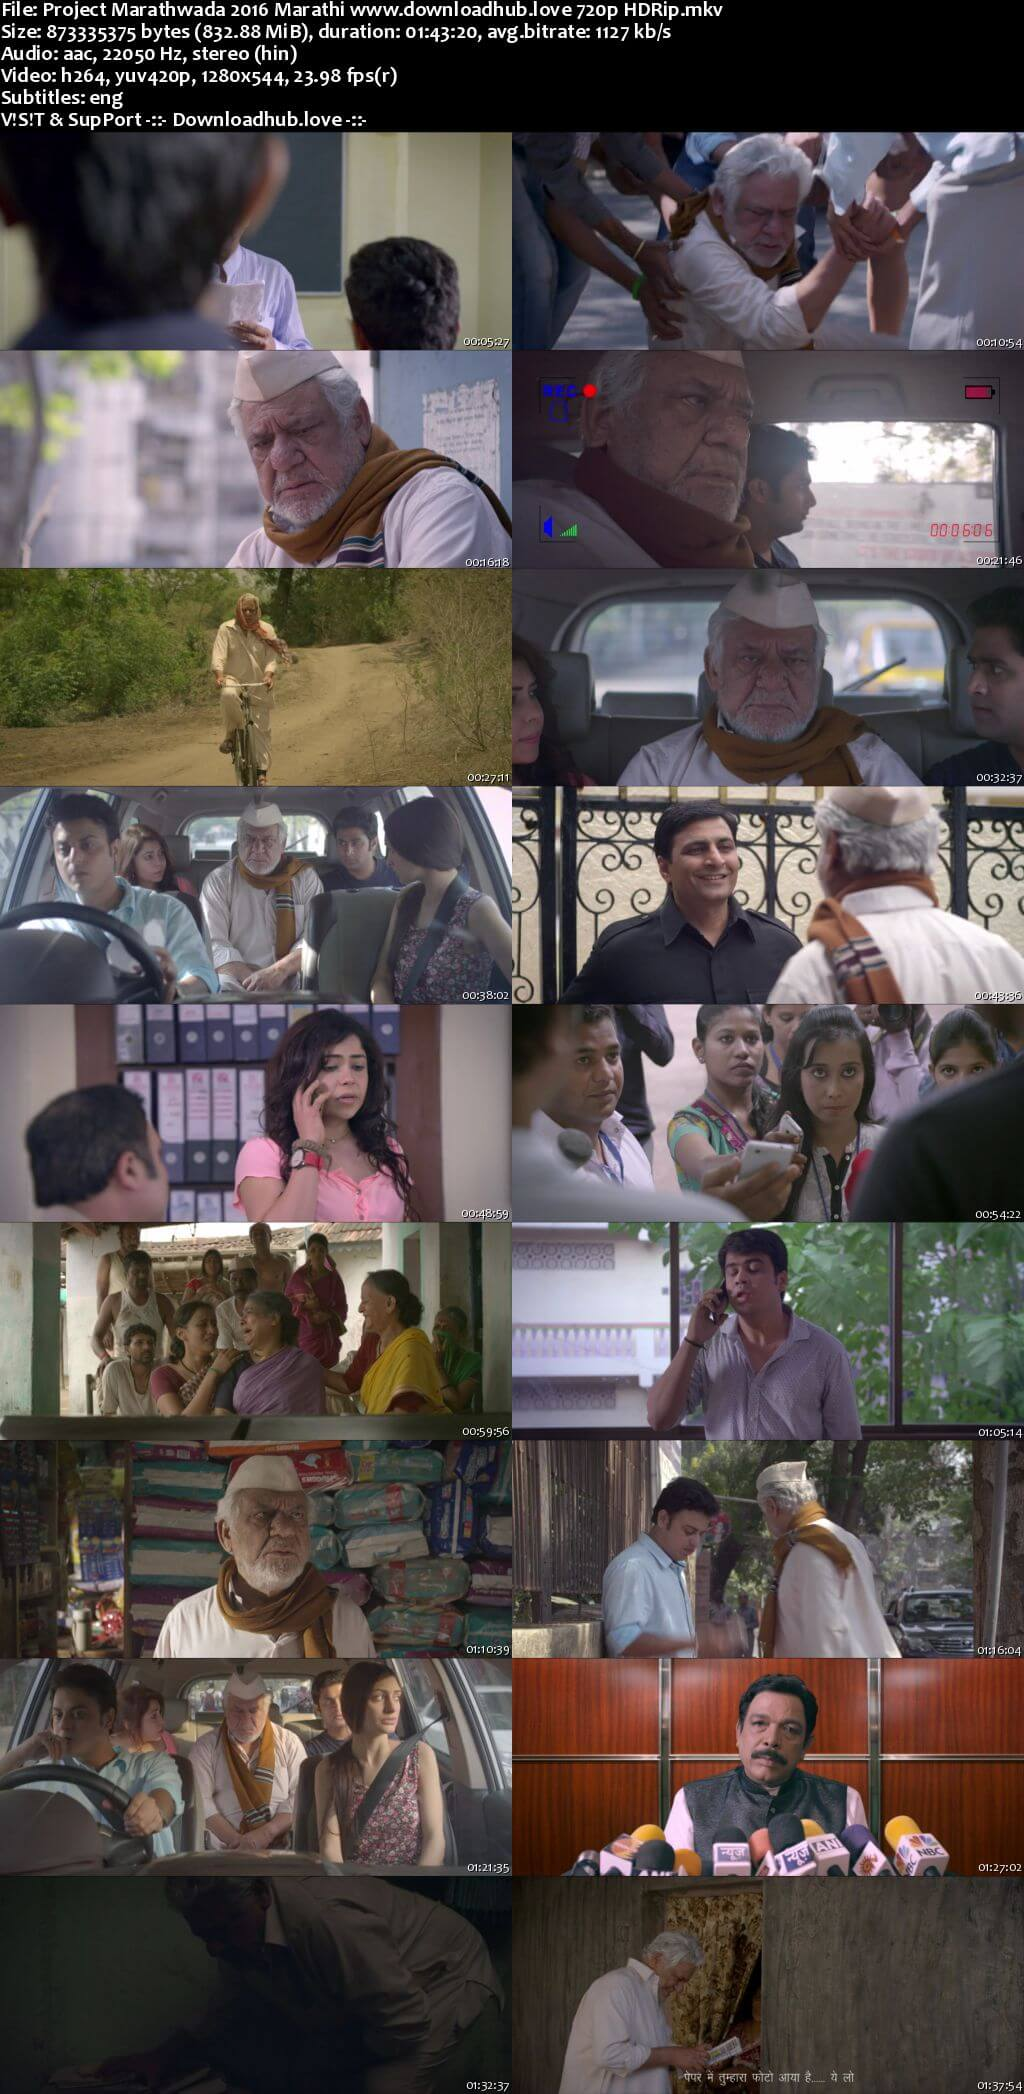 Project Marathwada 2016 Marathi 720p HDRip ESubs